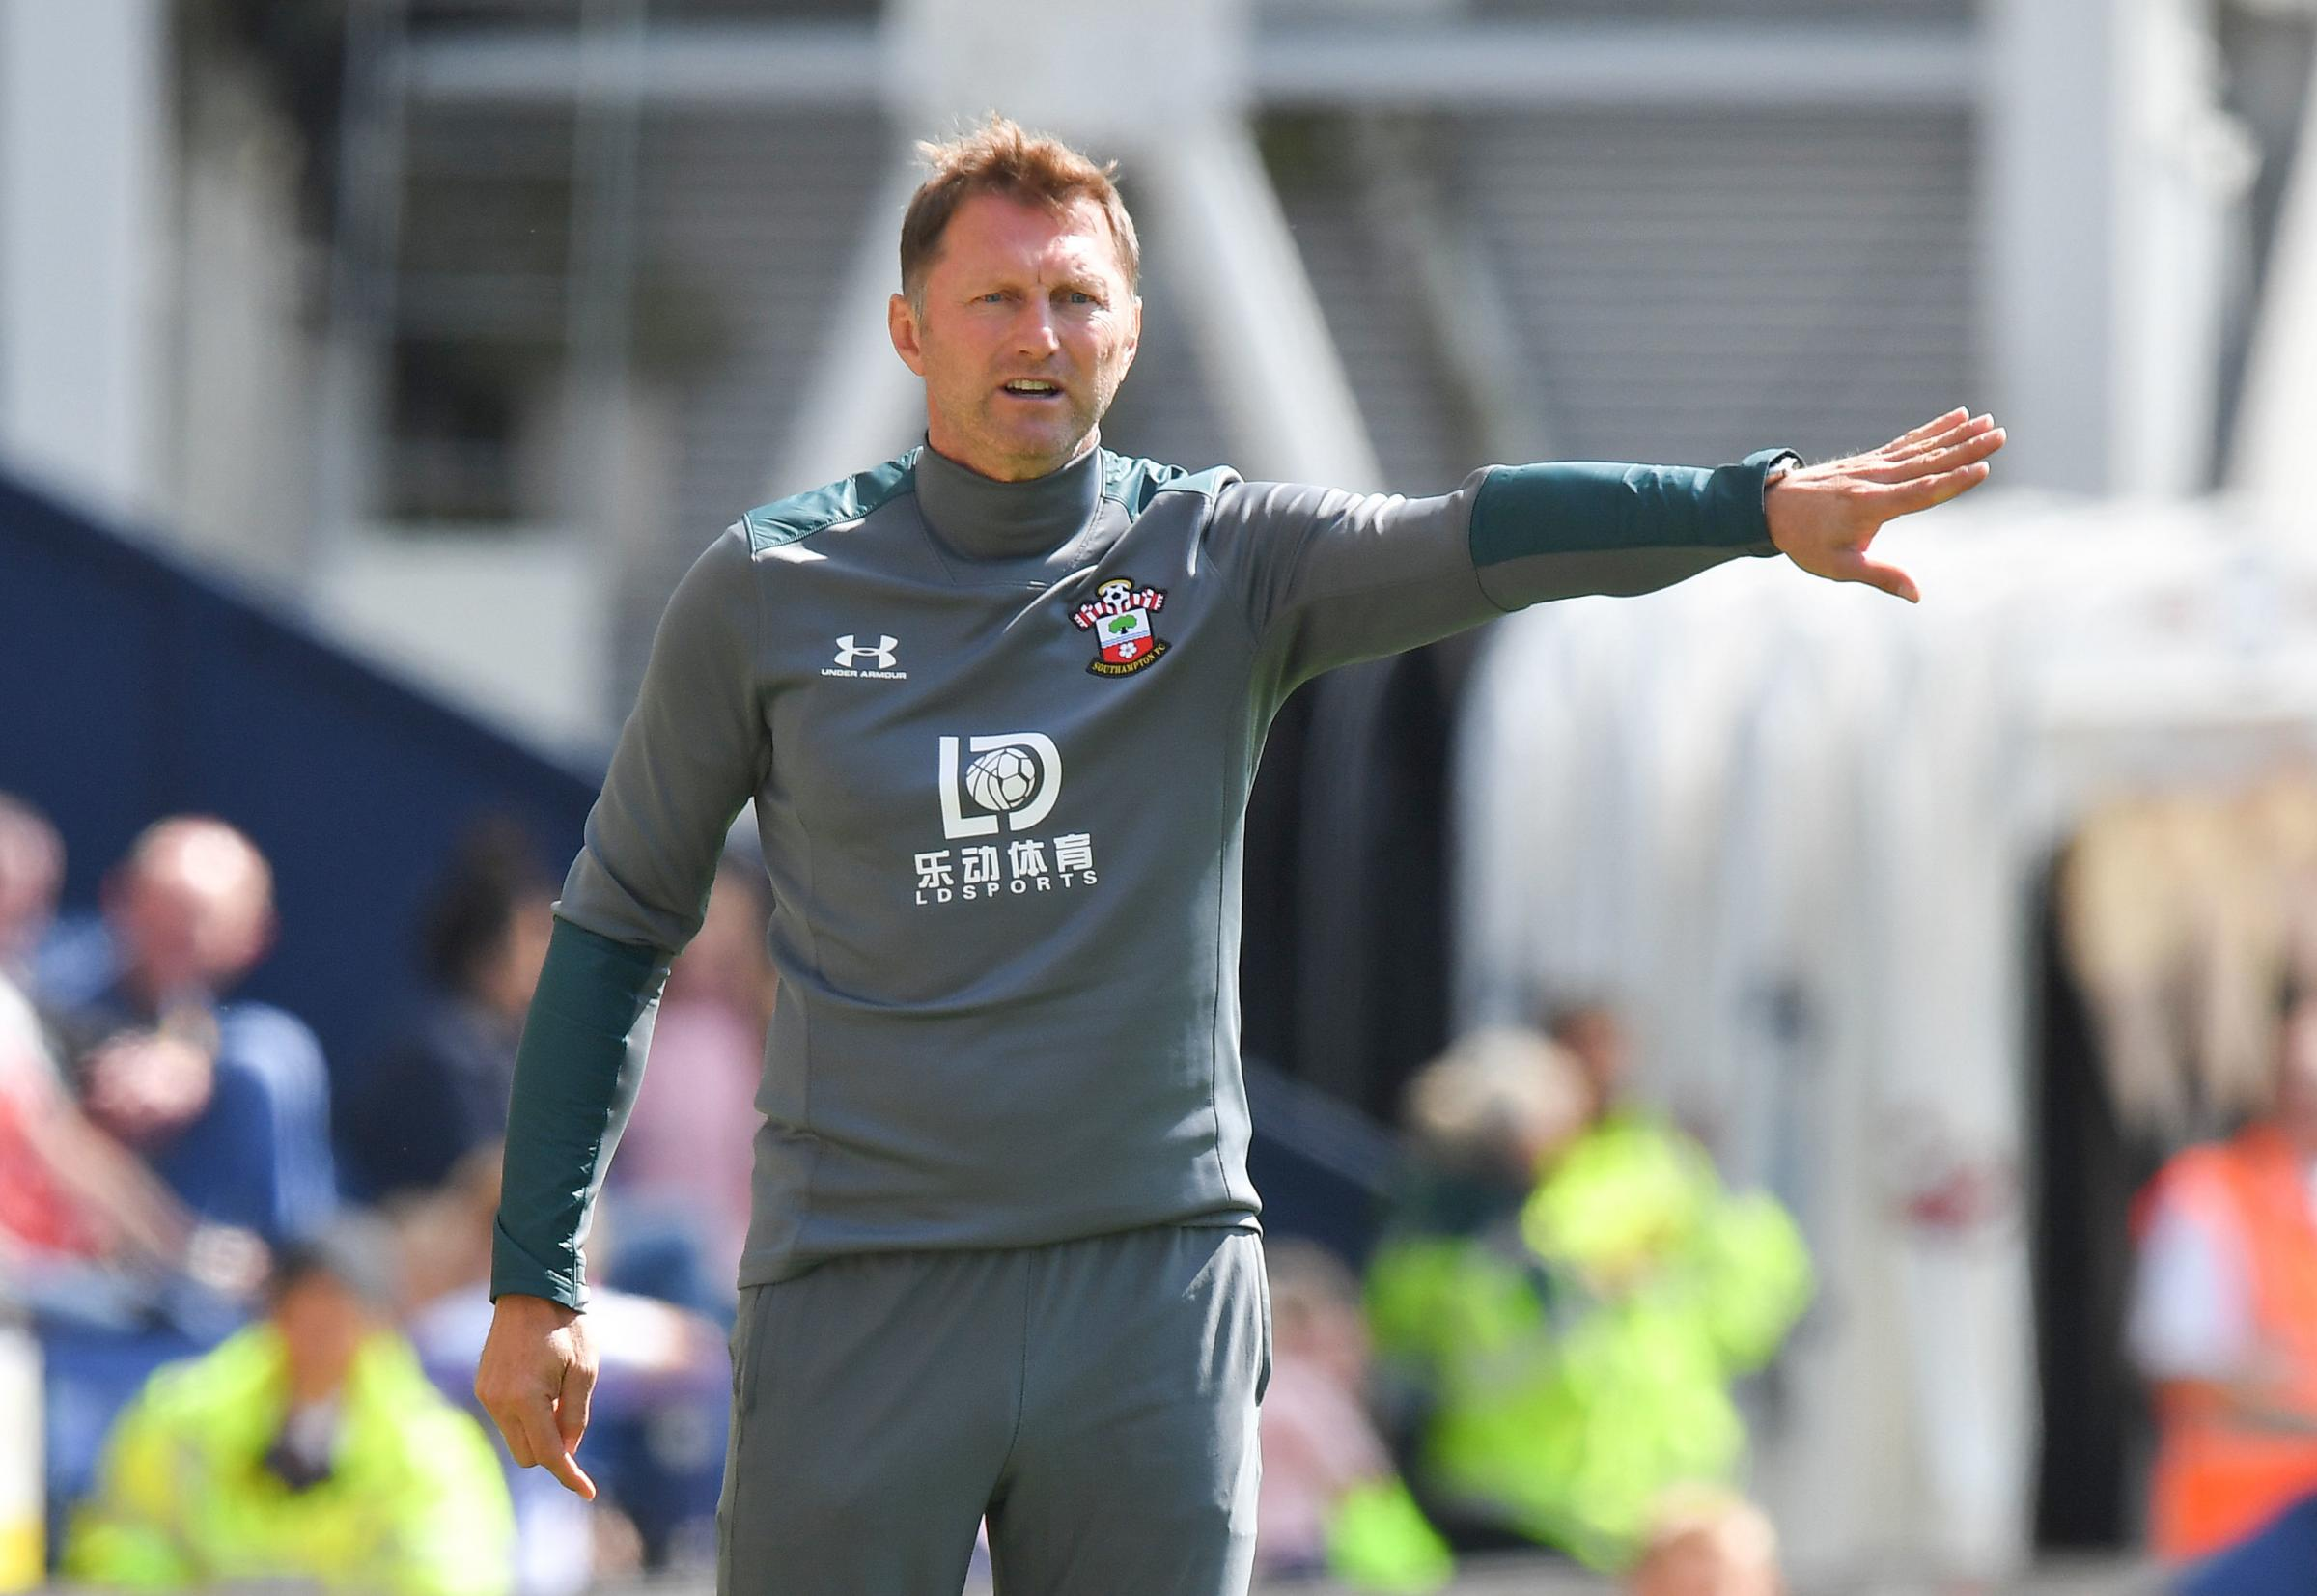 Richard Kitzbichler is Southampton's new first team assistant coach